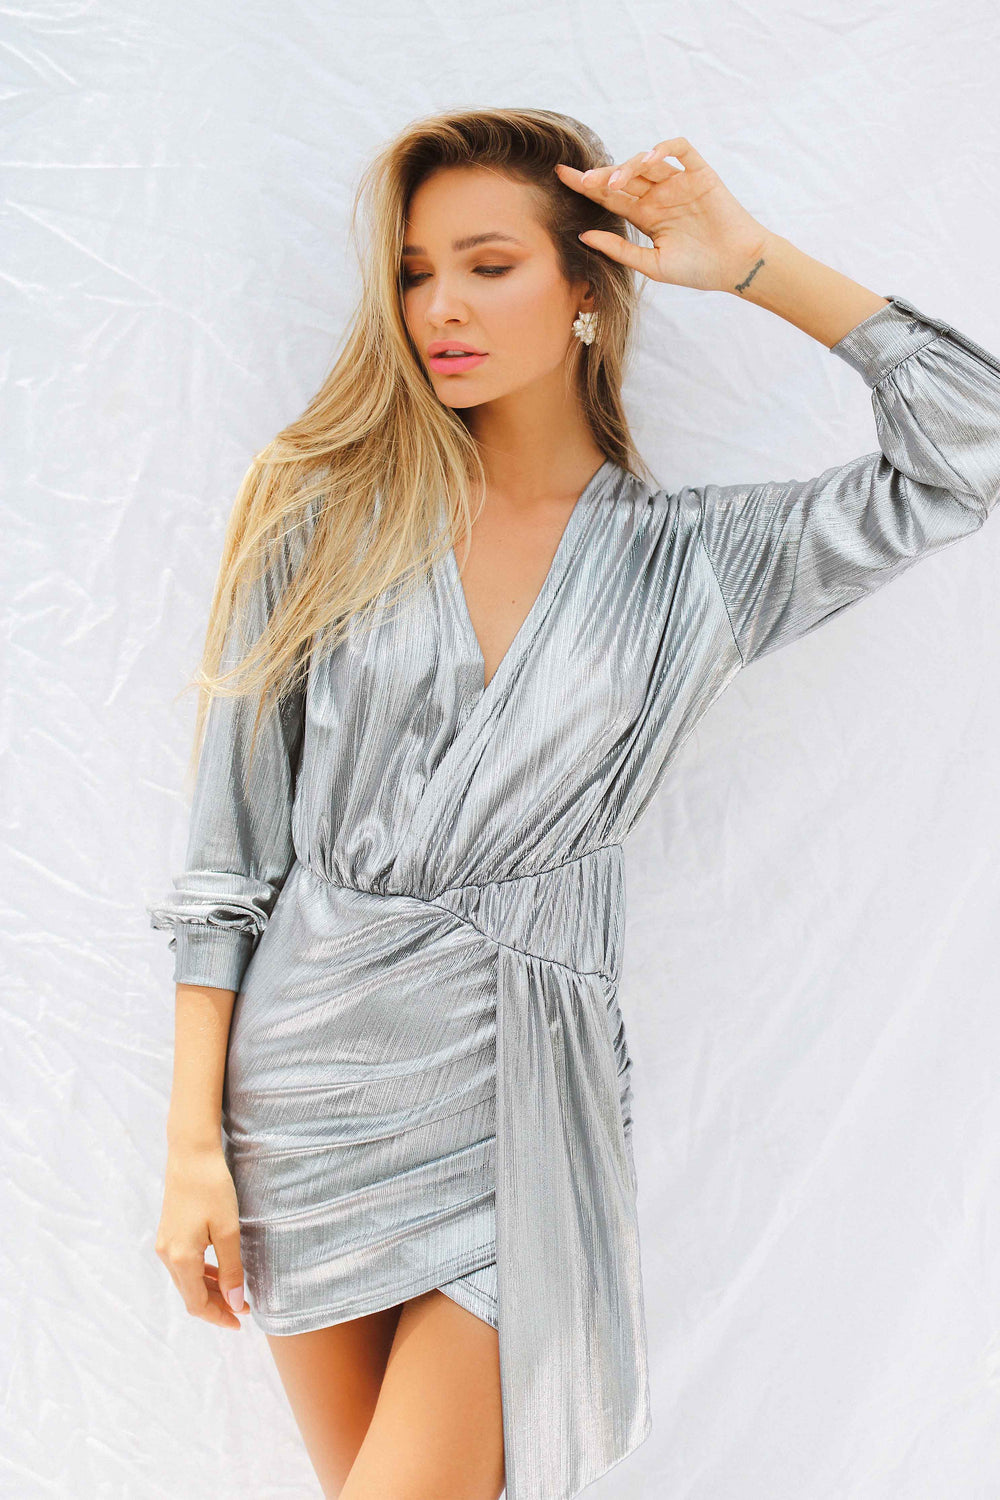 NADA DRESS IN SILVER - Chic Le Frique